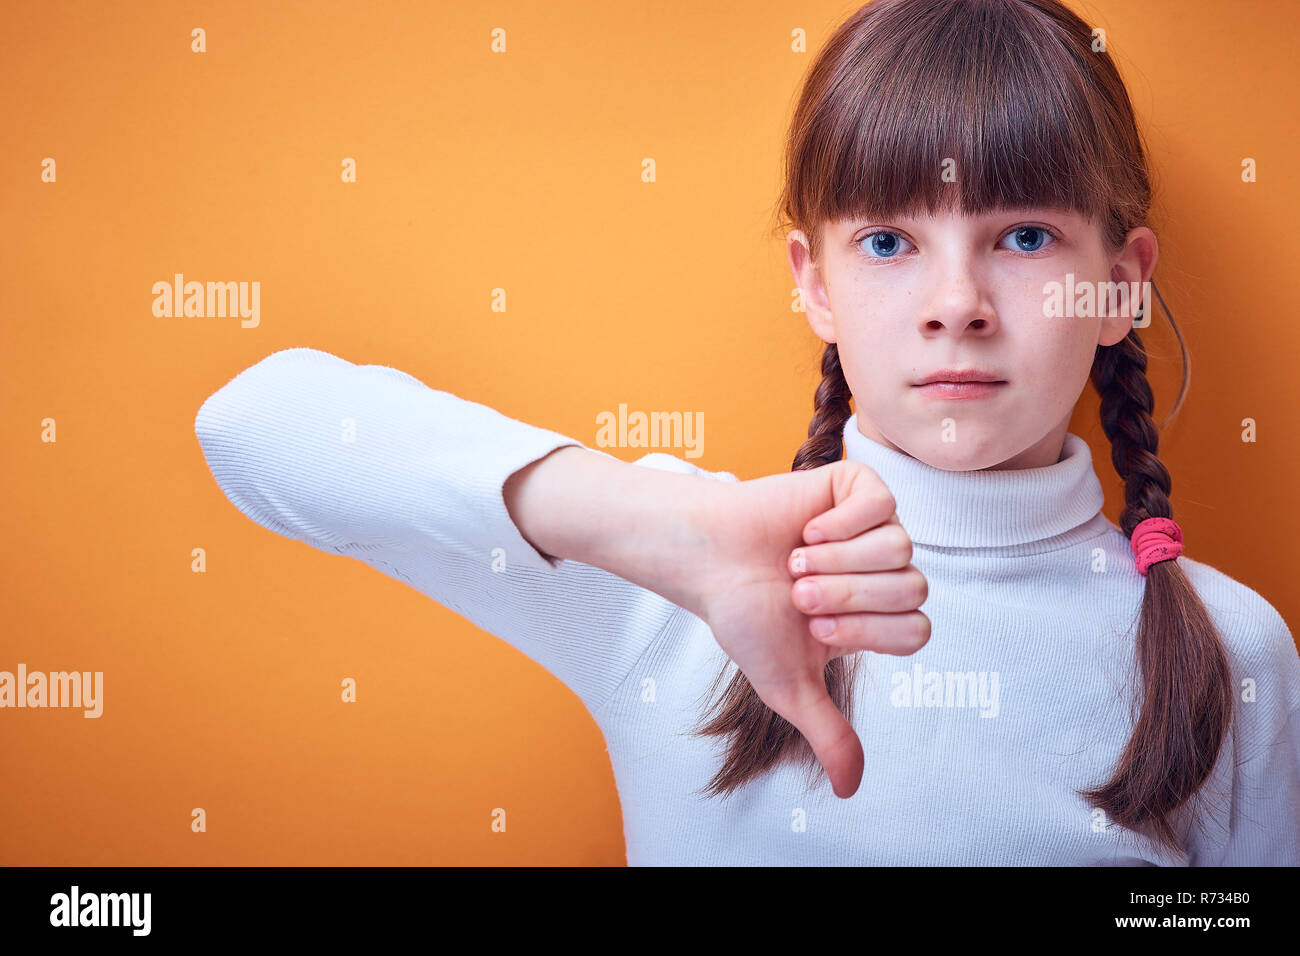 disagreement and protest, Caucasian teen girl shows thumb down on colored background, place for text - Stock Image